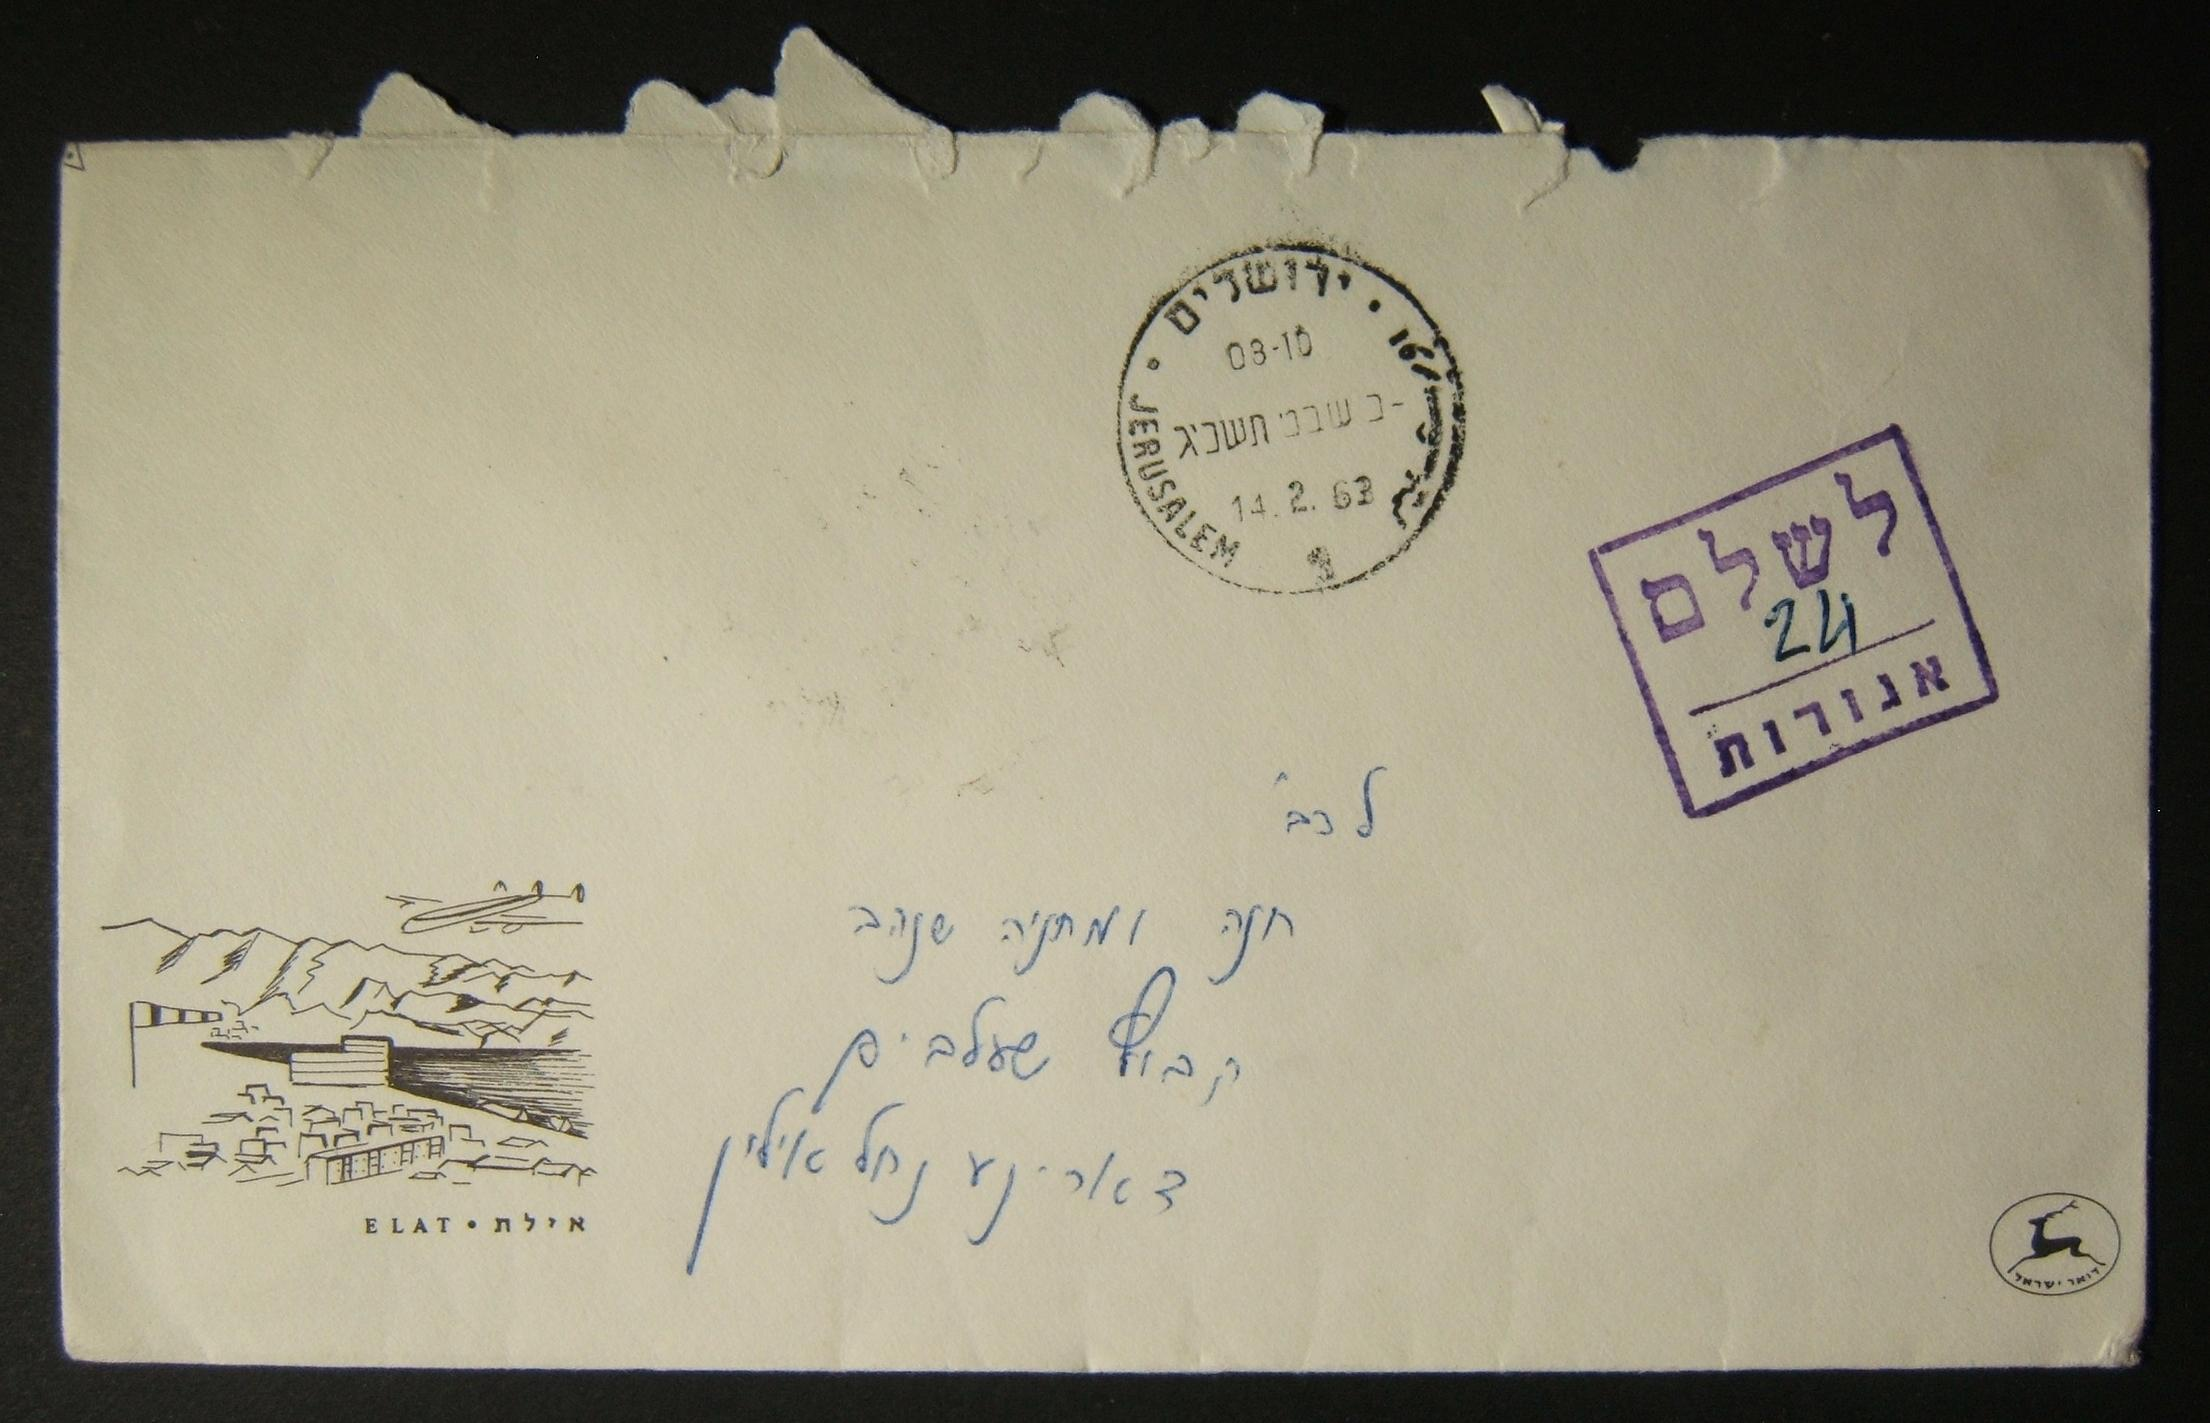 1963 domestic taxed cover: 14-2-1963 postal authority illustrated envelope ex JERUSALEM-3 to KIBBUTZ SHAALVIM (via mobile post Nahal Ayalon) mailed unfranked (but